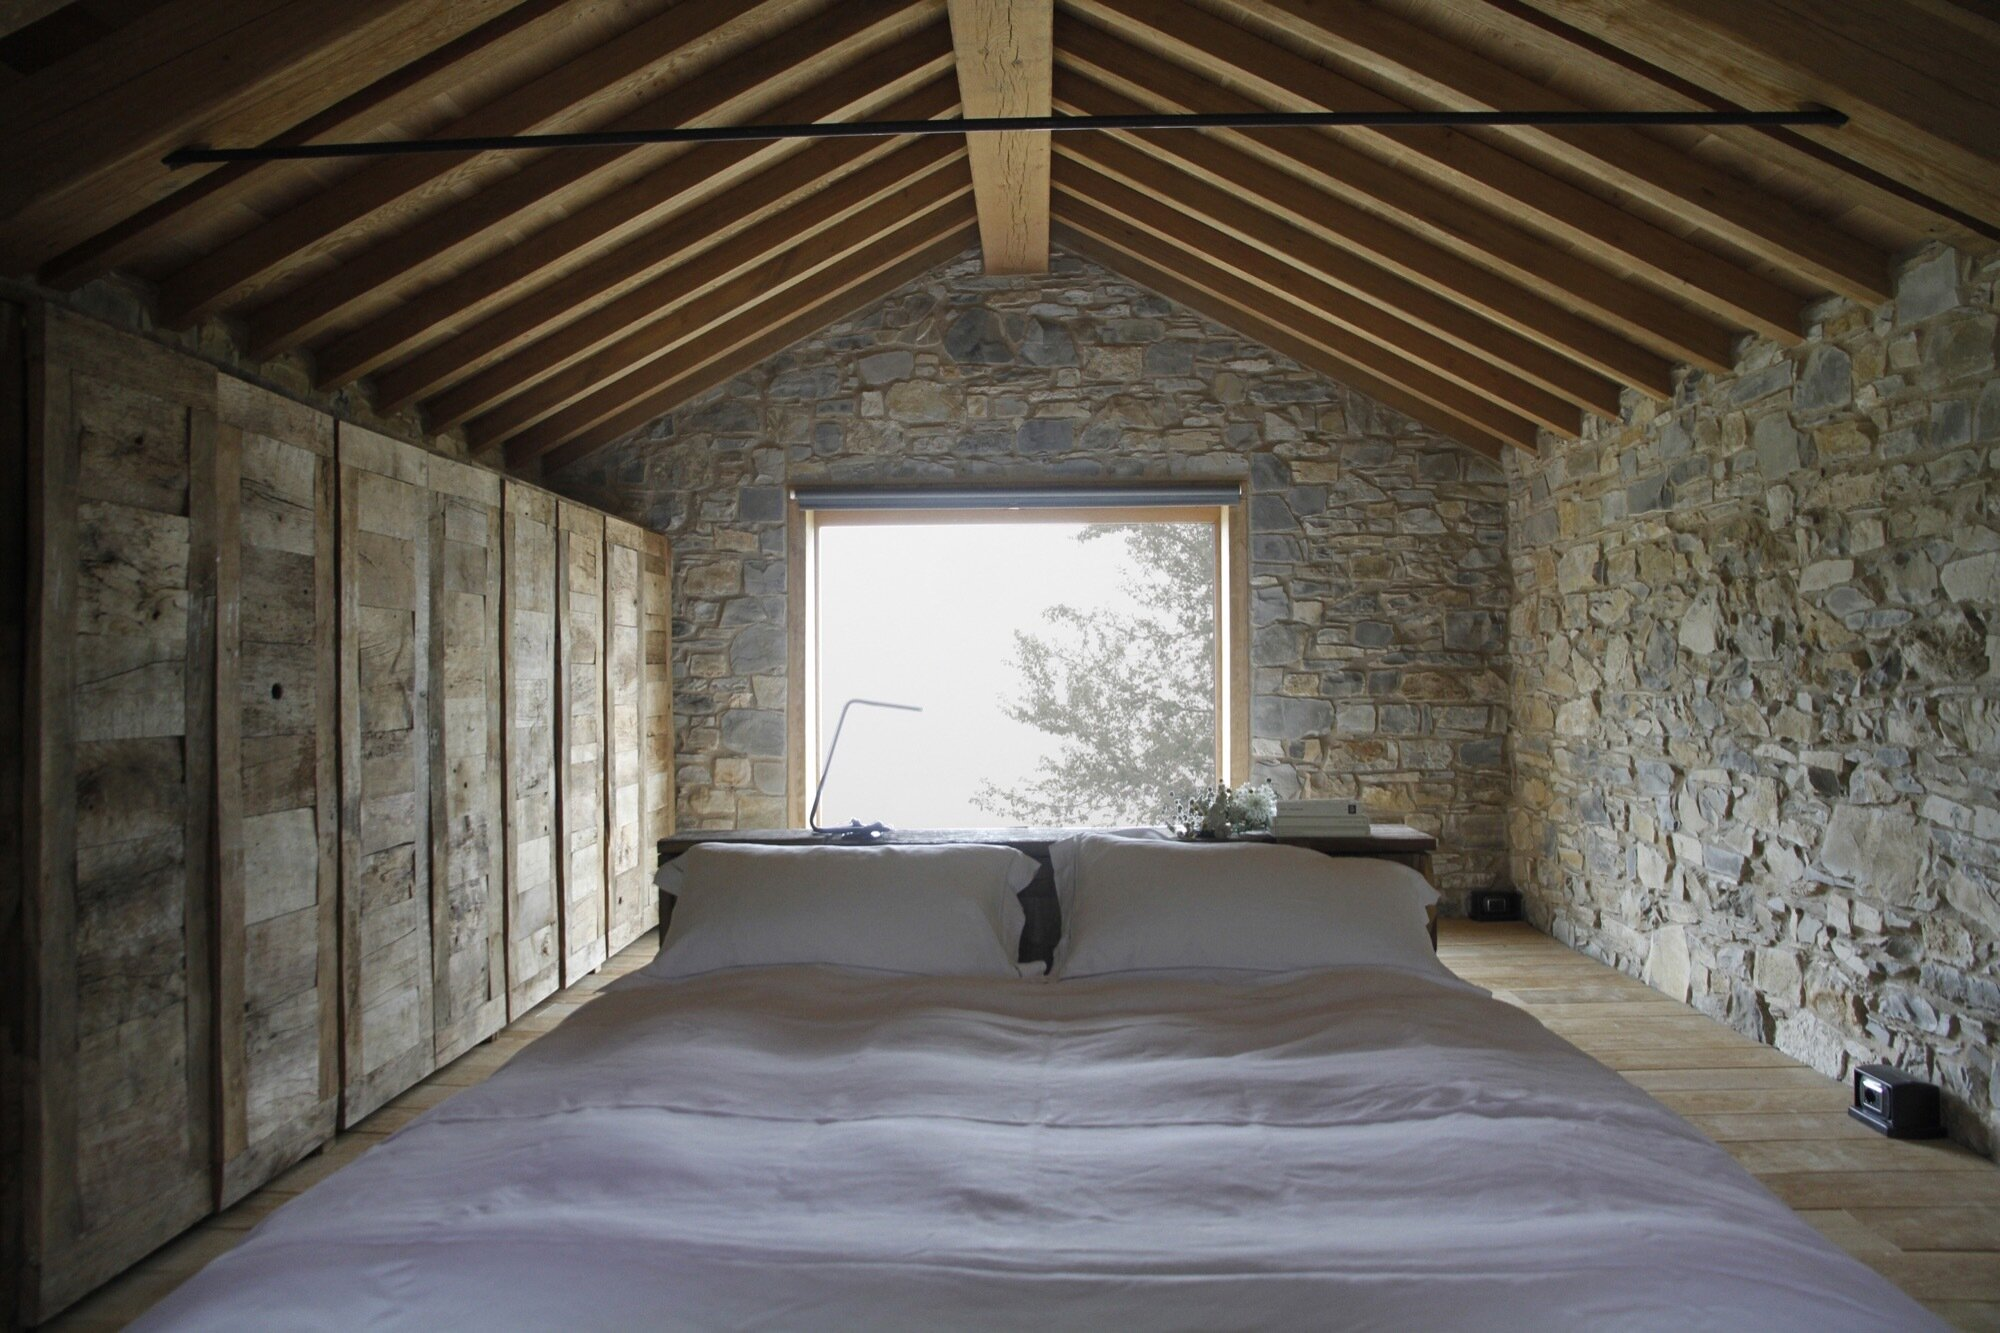 Cottage Restoration - Studio Contini - Italy - Bedrom Window - Humble Homes